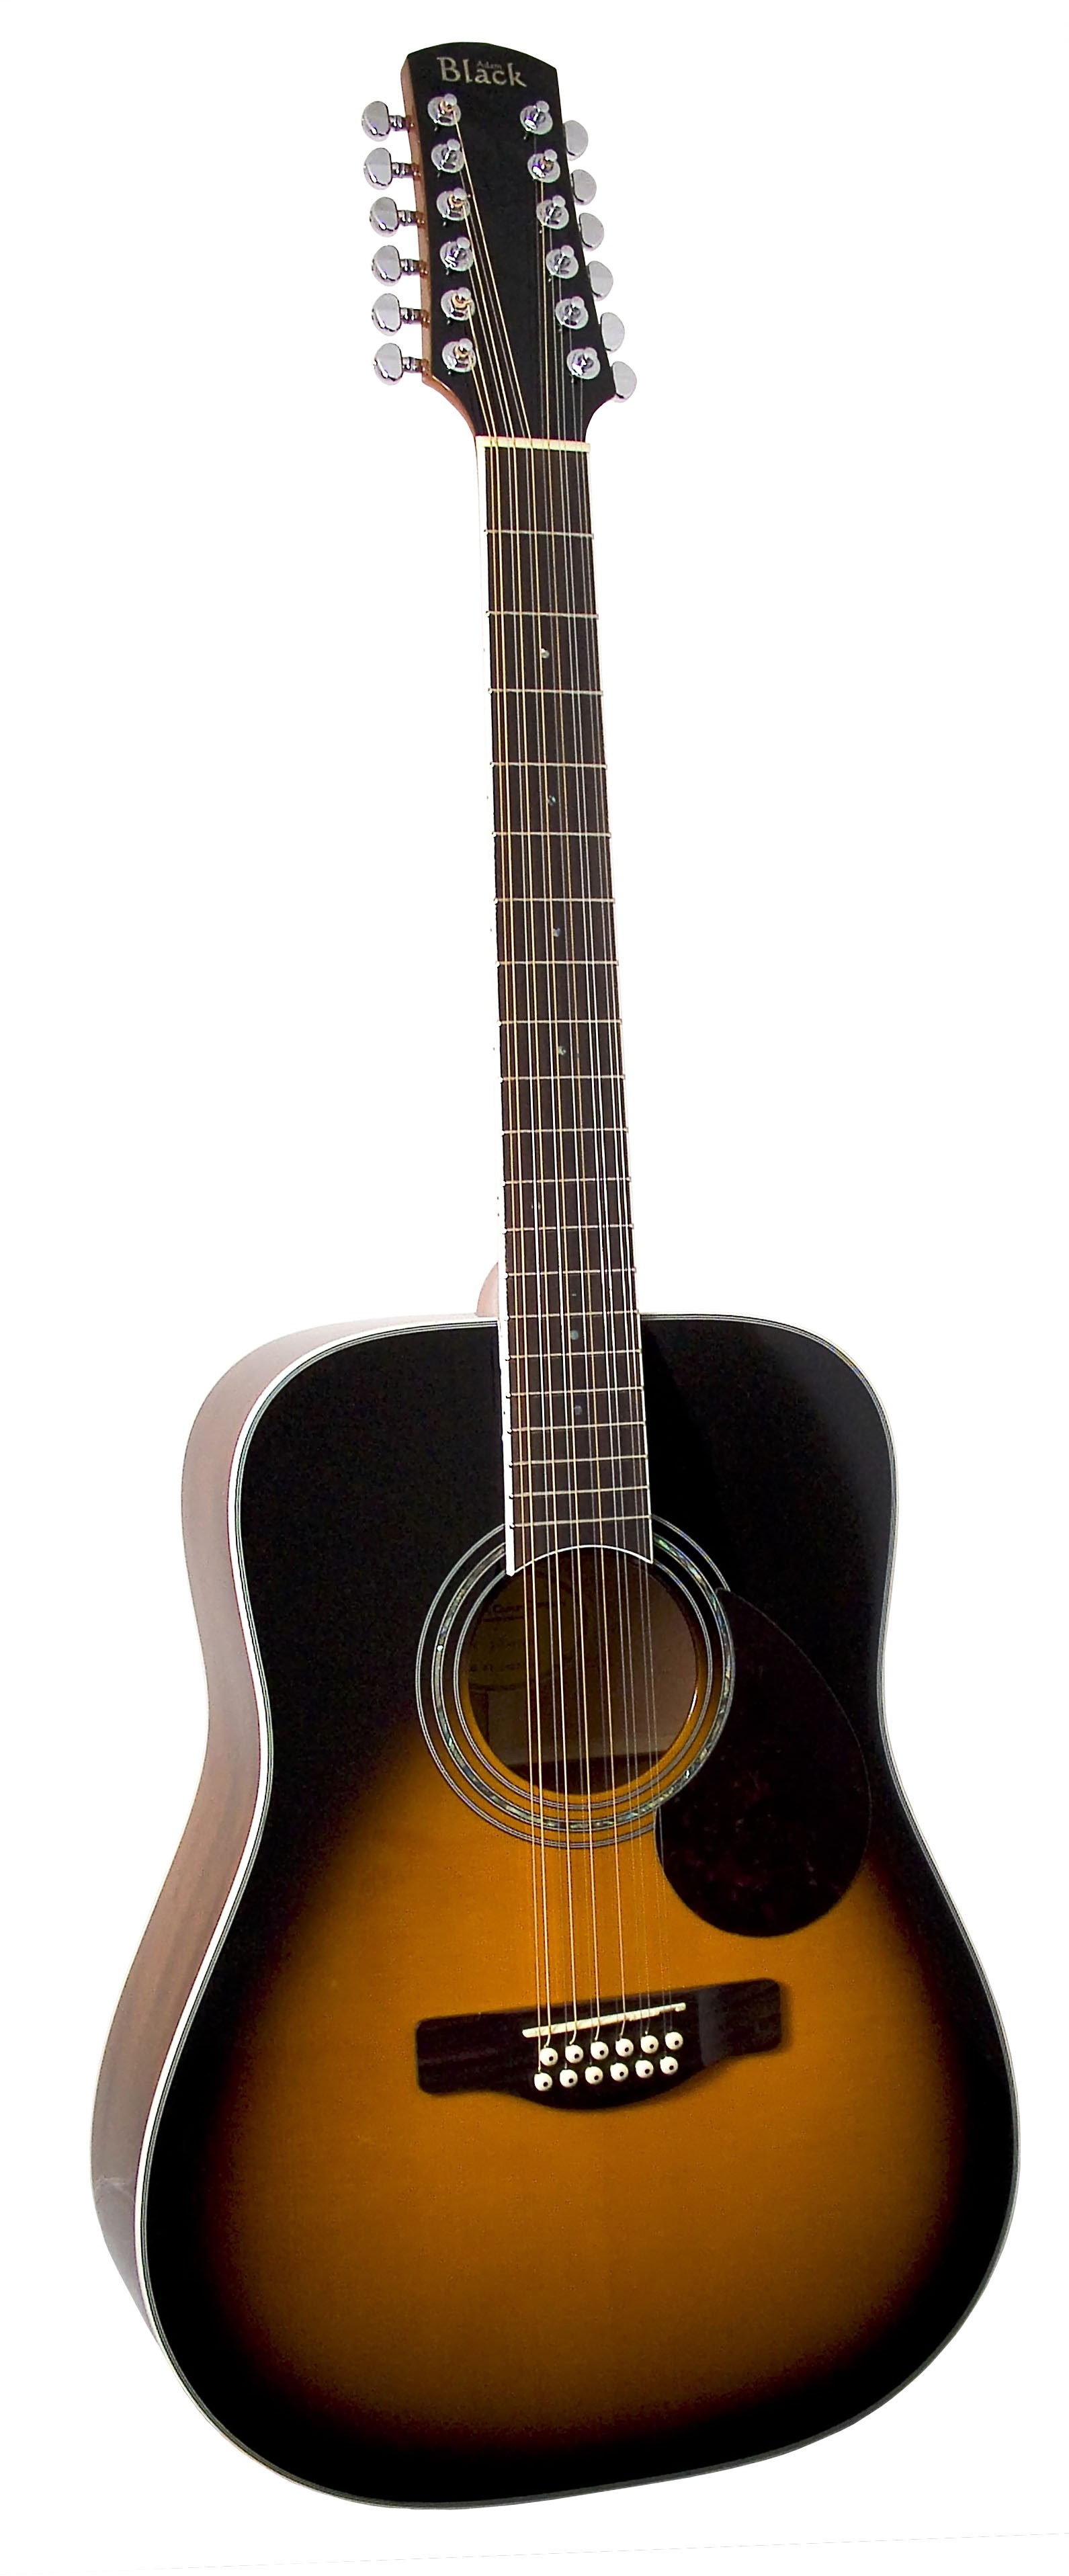 Adam Black S-5/12 Legacy - 12 String Vintage Sunburst